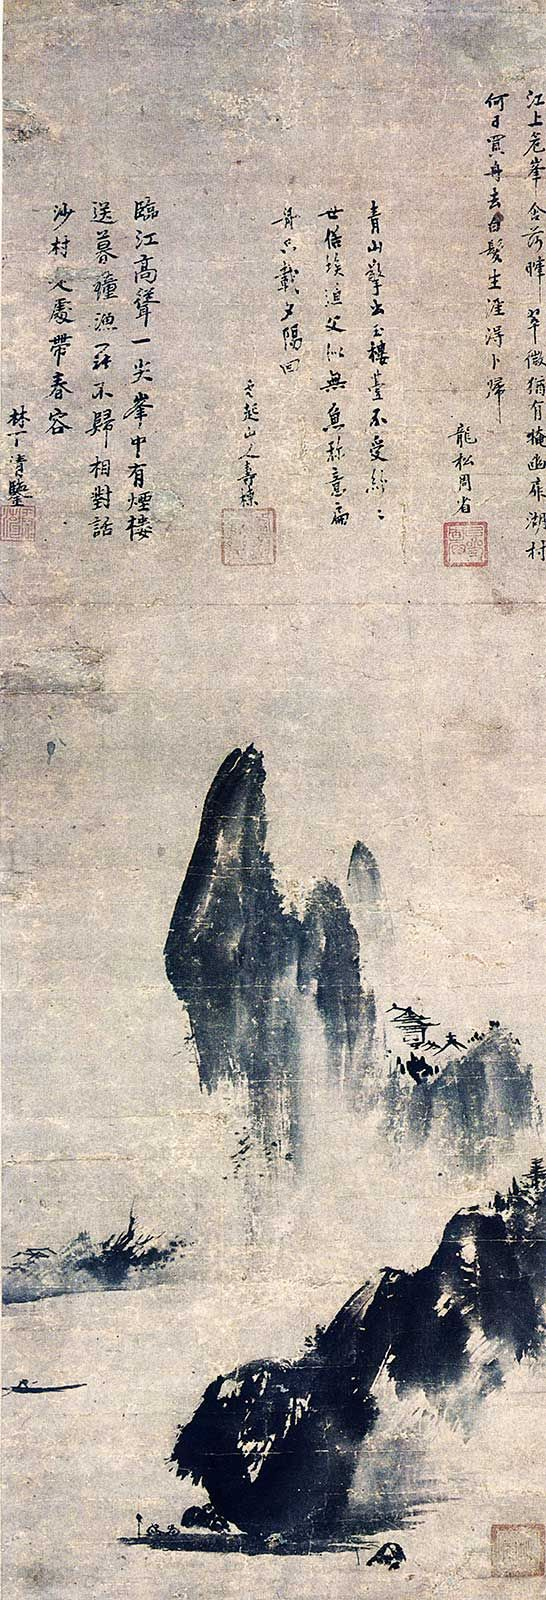 拙宗等揚筆 山水図 牧松周省等賛 Sesso Toyo: Landscape view of the Word of Bokusyosyusyo Us has entered. 雪舟 Sesshu